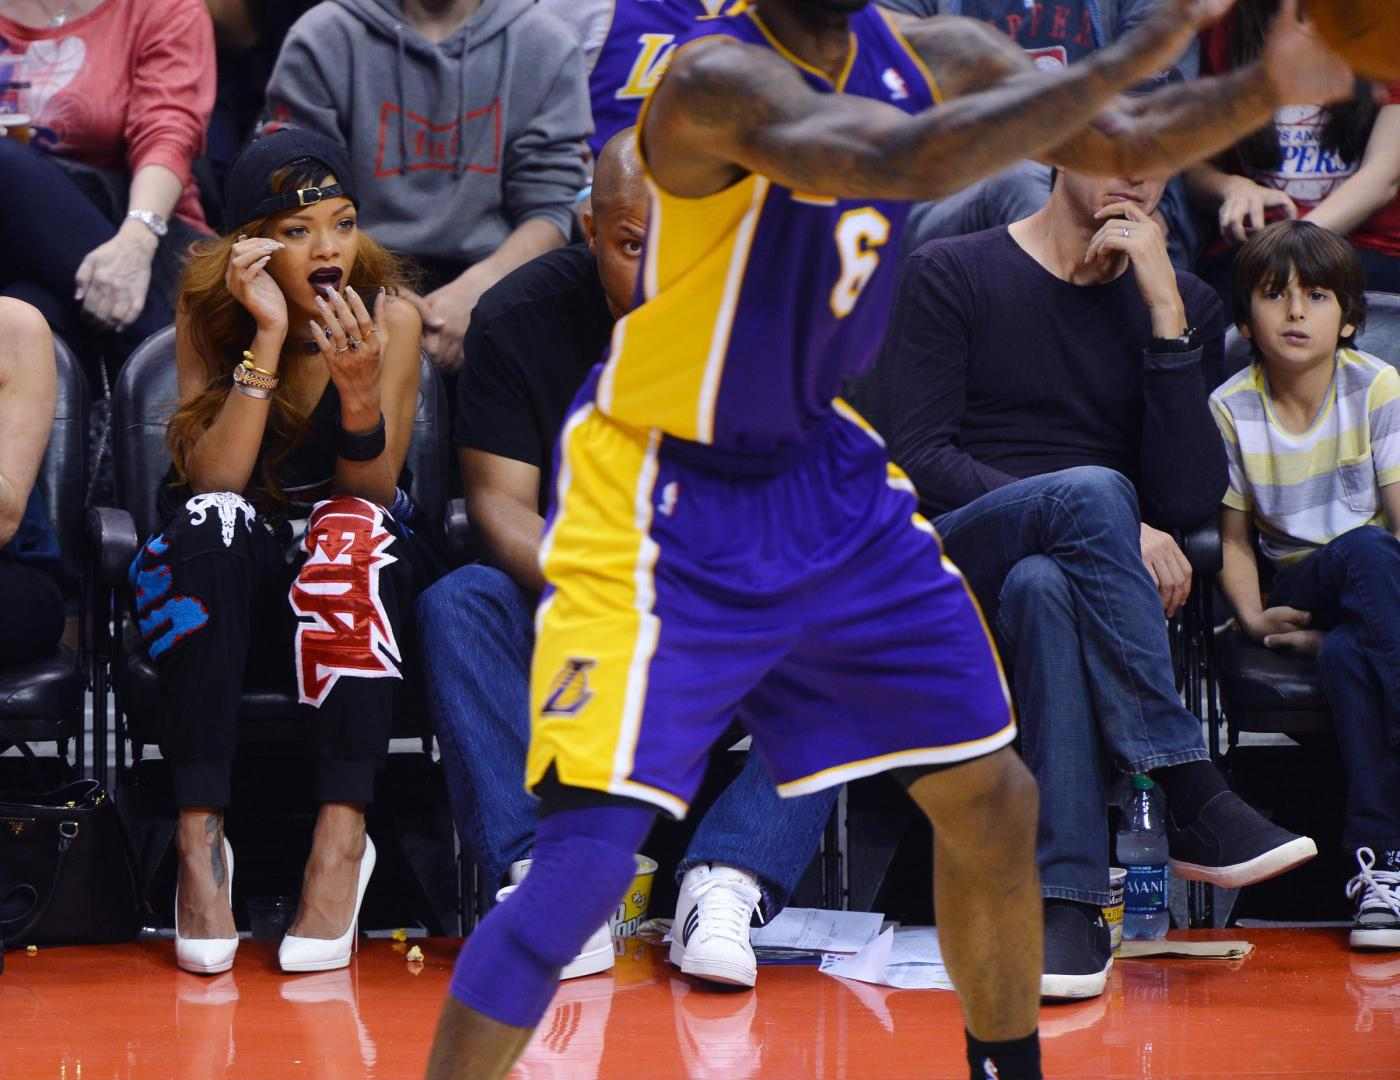 Theme.... You Asian lady courtside lakers